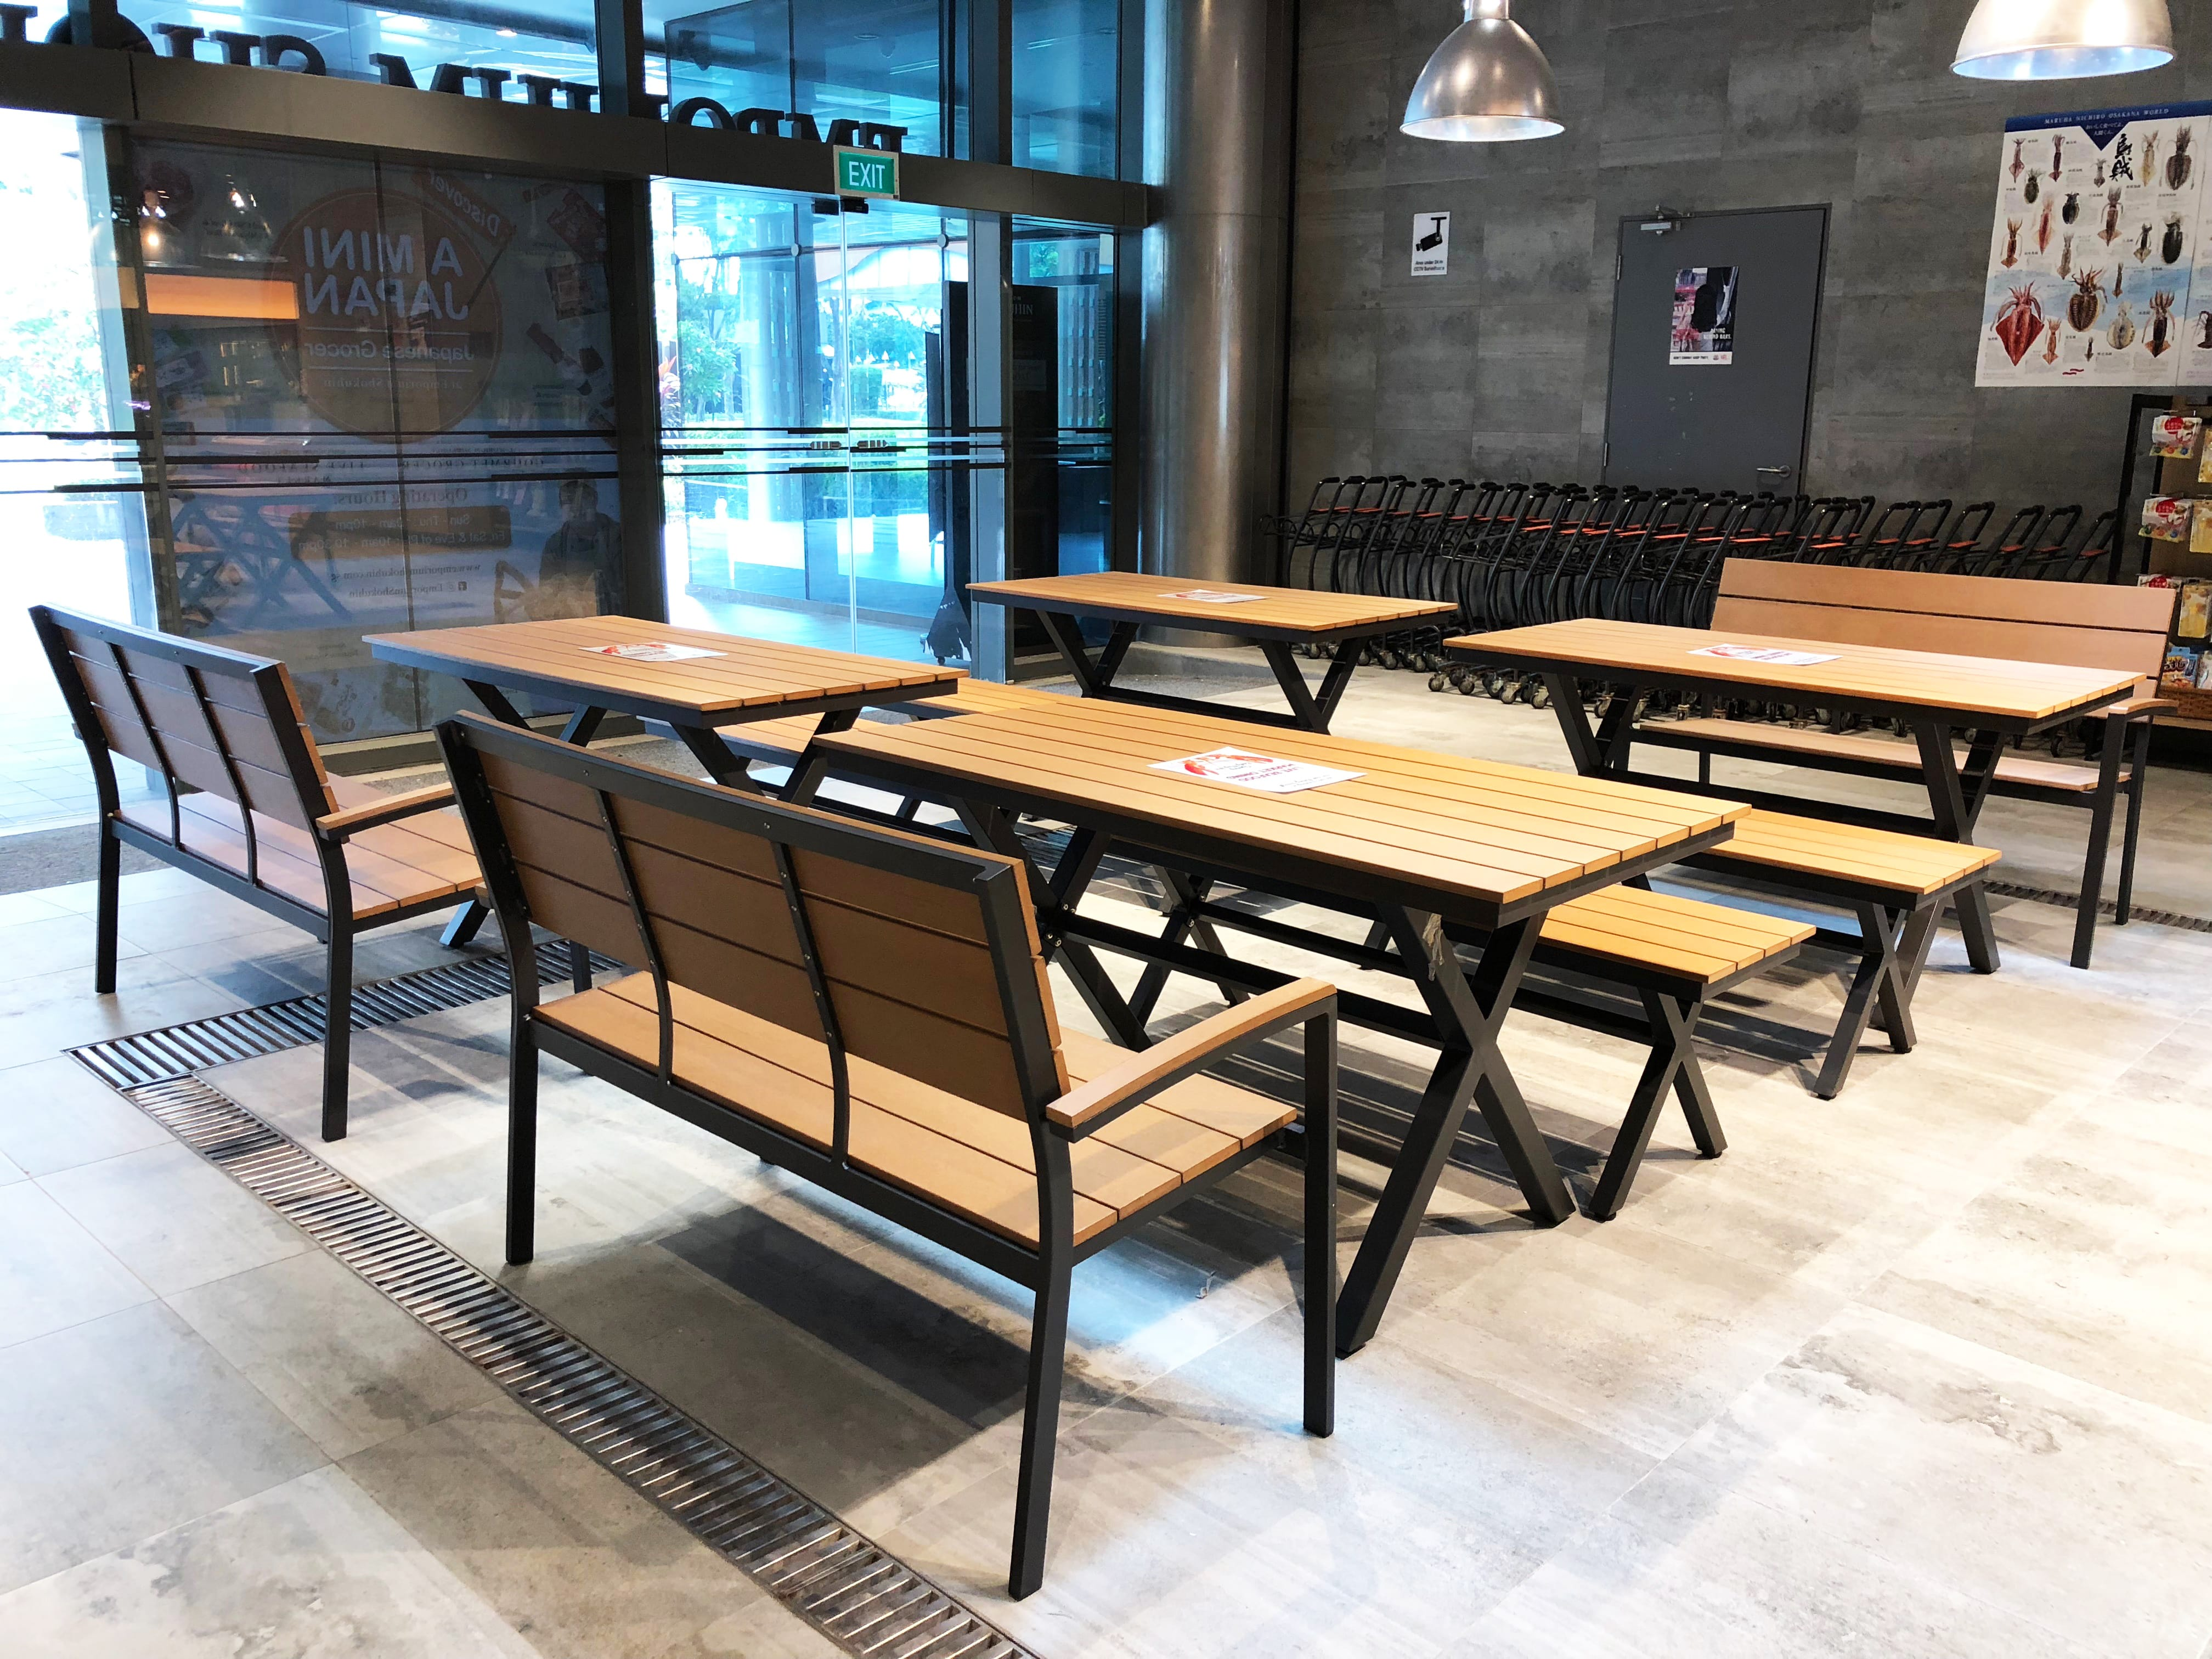 Emporium Shokuhin - Marina Square | Product Seen: [Fossil Outdoor Bench – Highback, Fossil Outdoor Bench – No Back & Fossil Outdoor Dining Table - W1400]